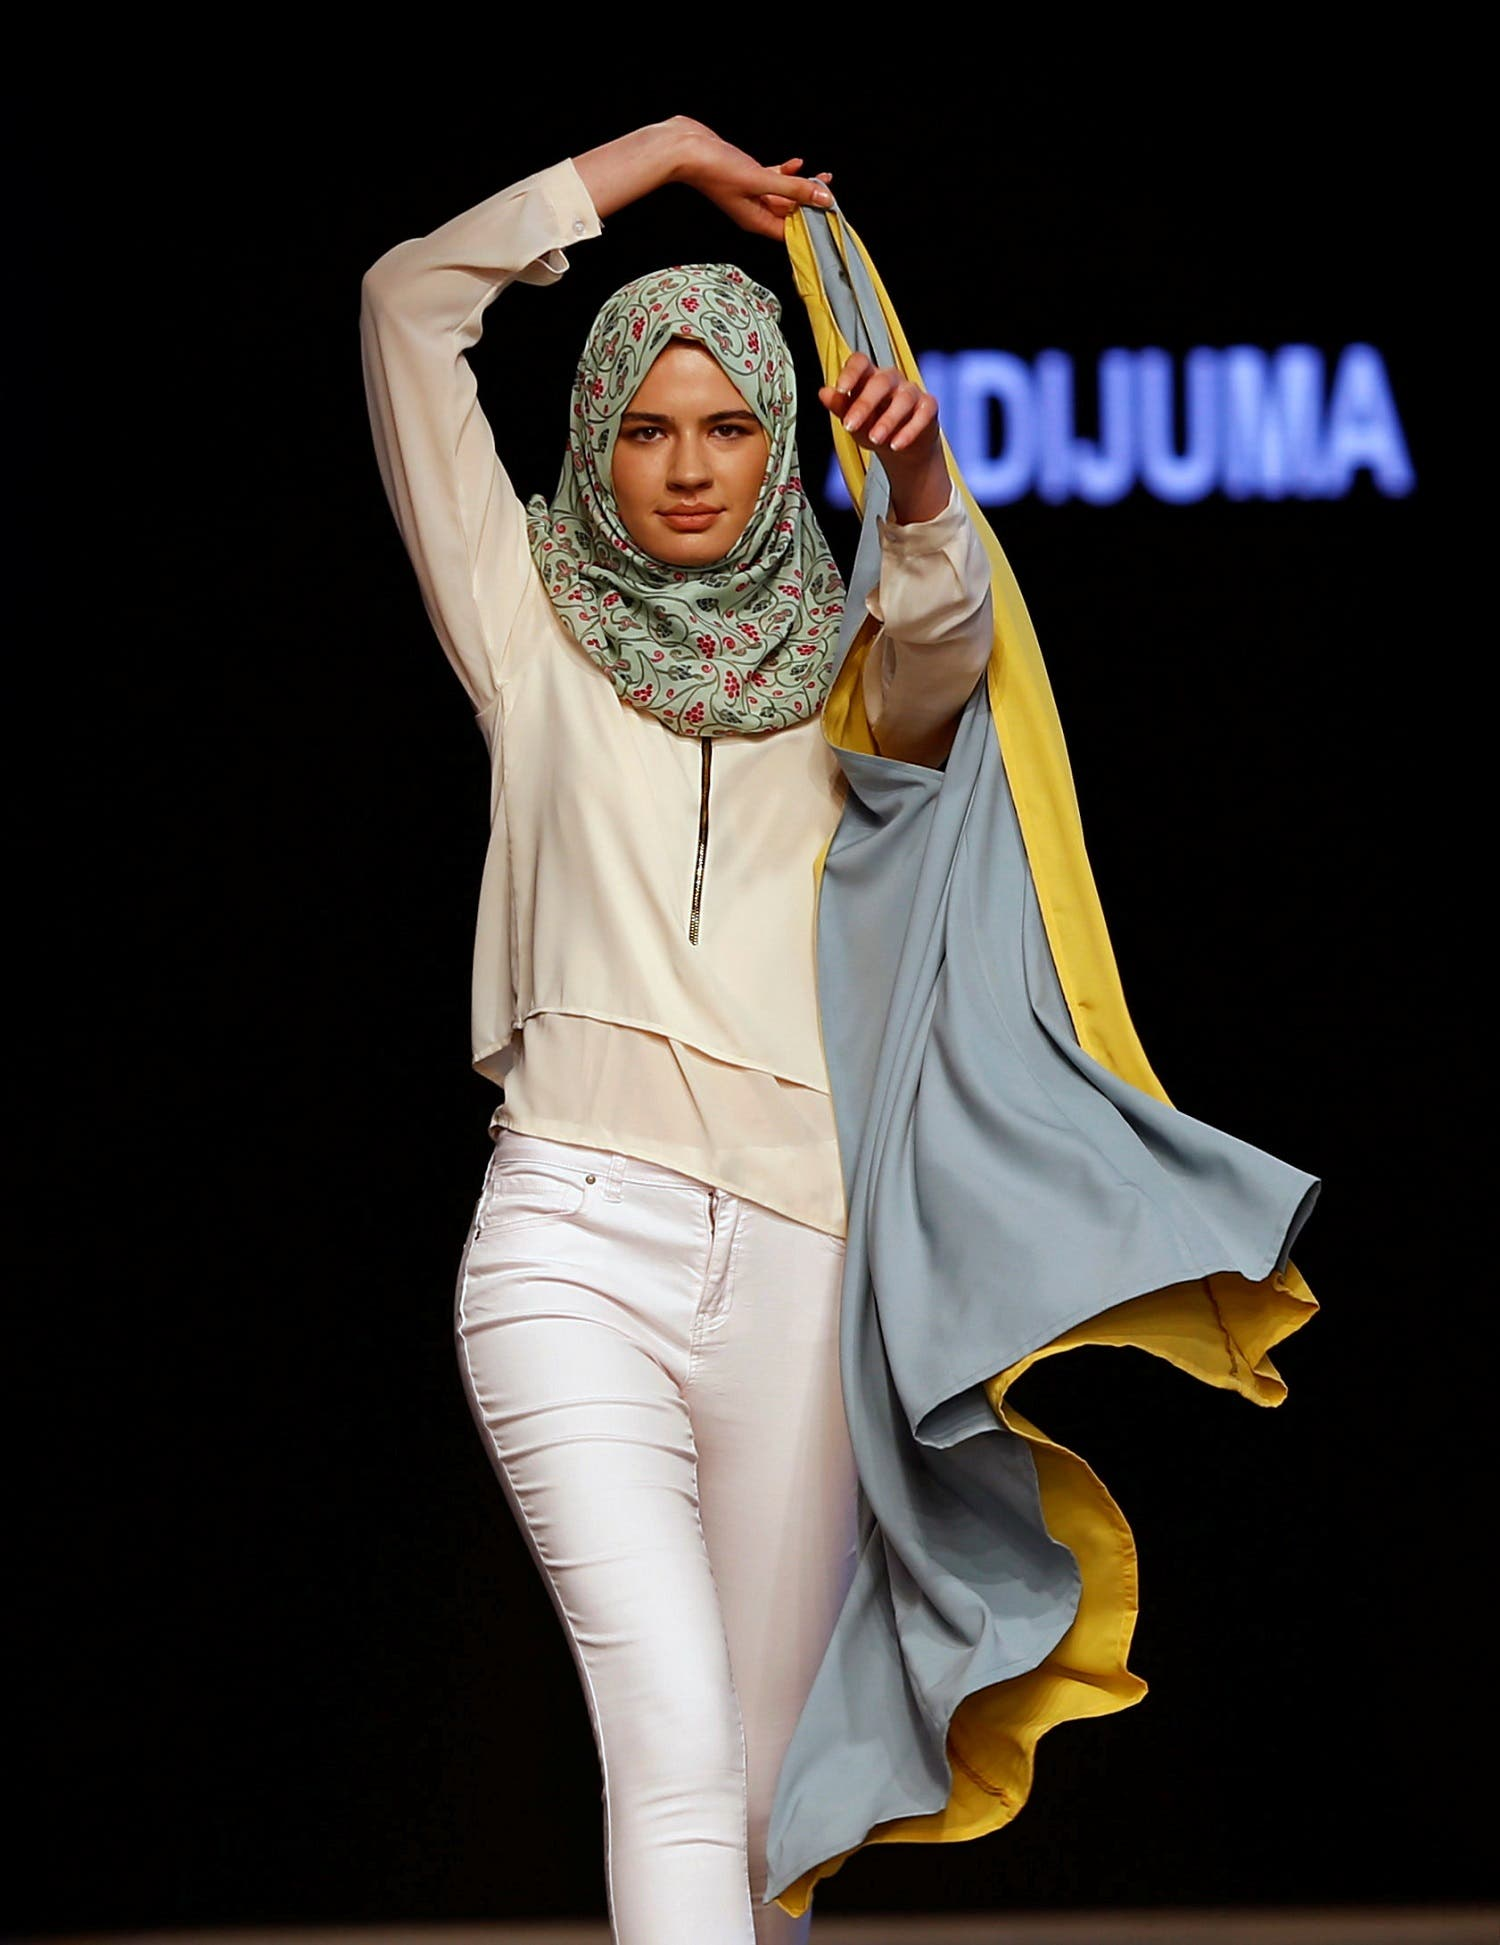 A model presents a creation by Malaysian designer Aidijuma during Istanbul Modest Fashion Week at the historical Haydarpasa train station in Istanbul, Turkey May 13, 2016. REUTERS